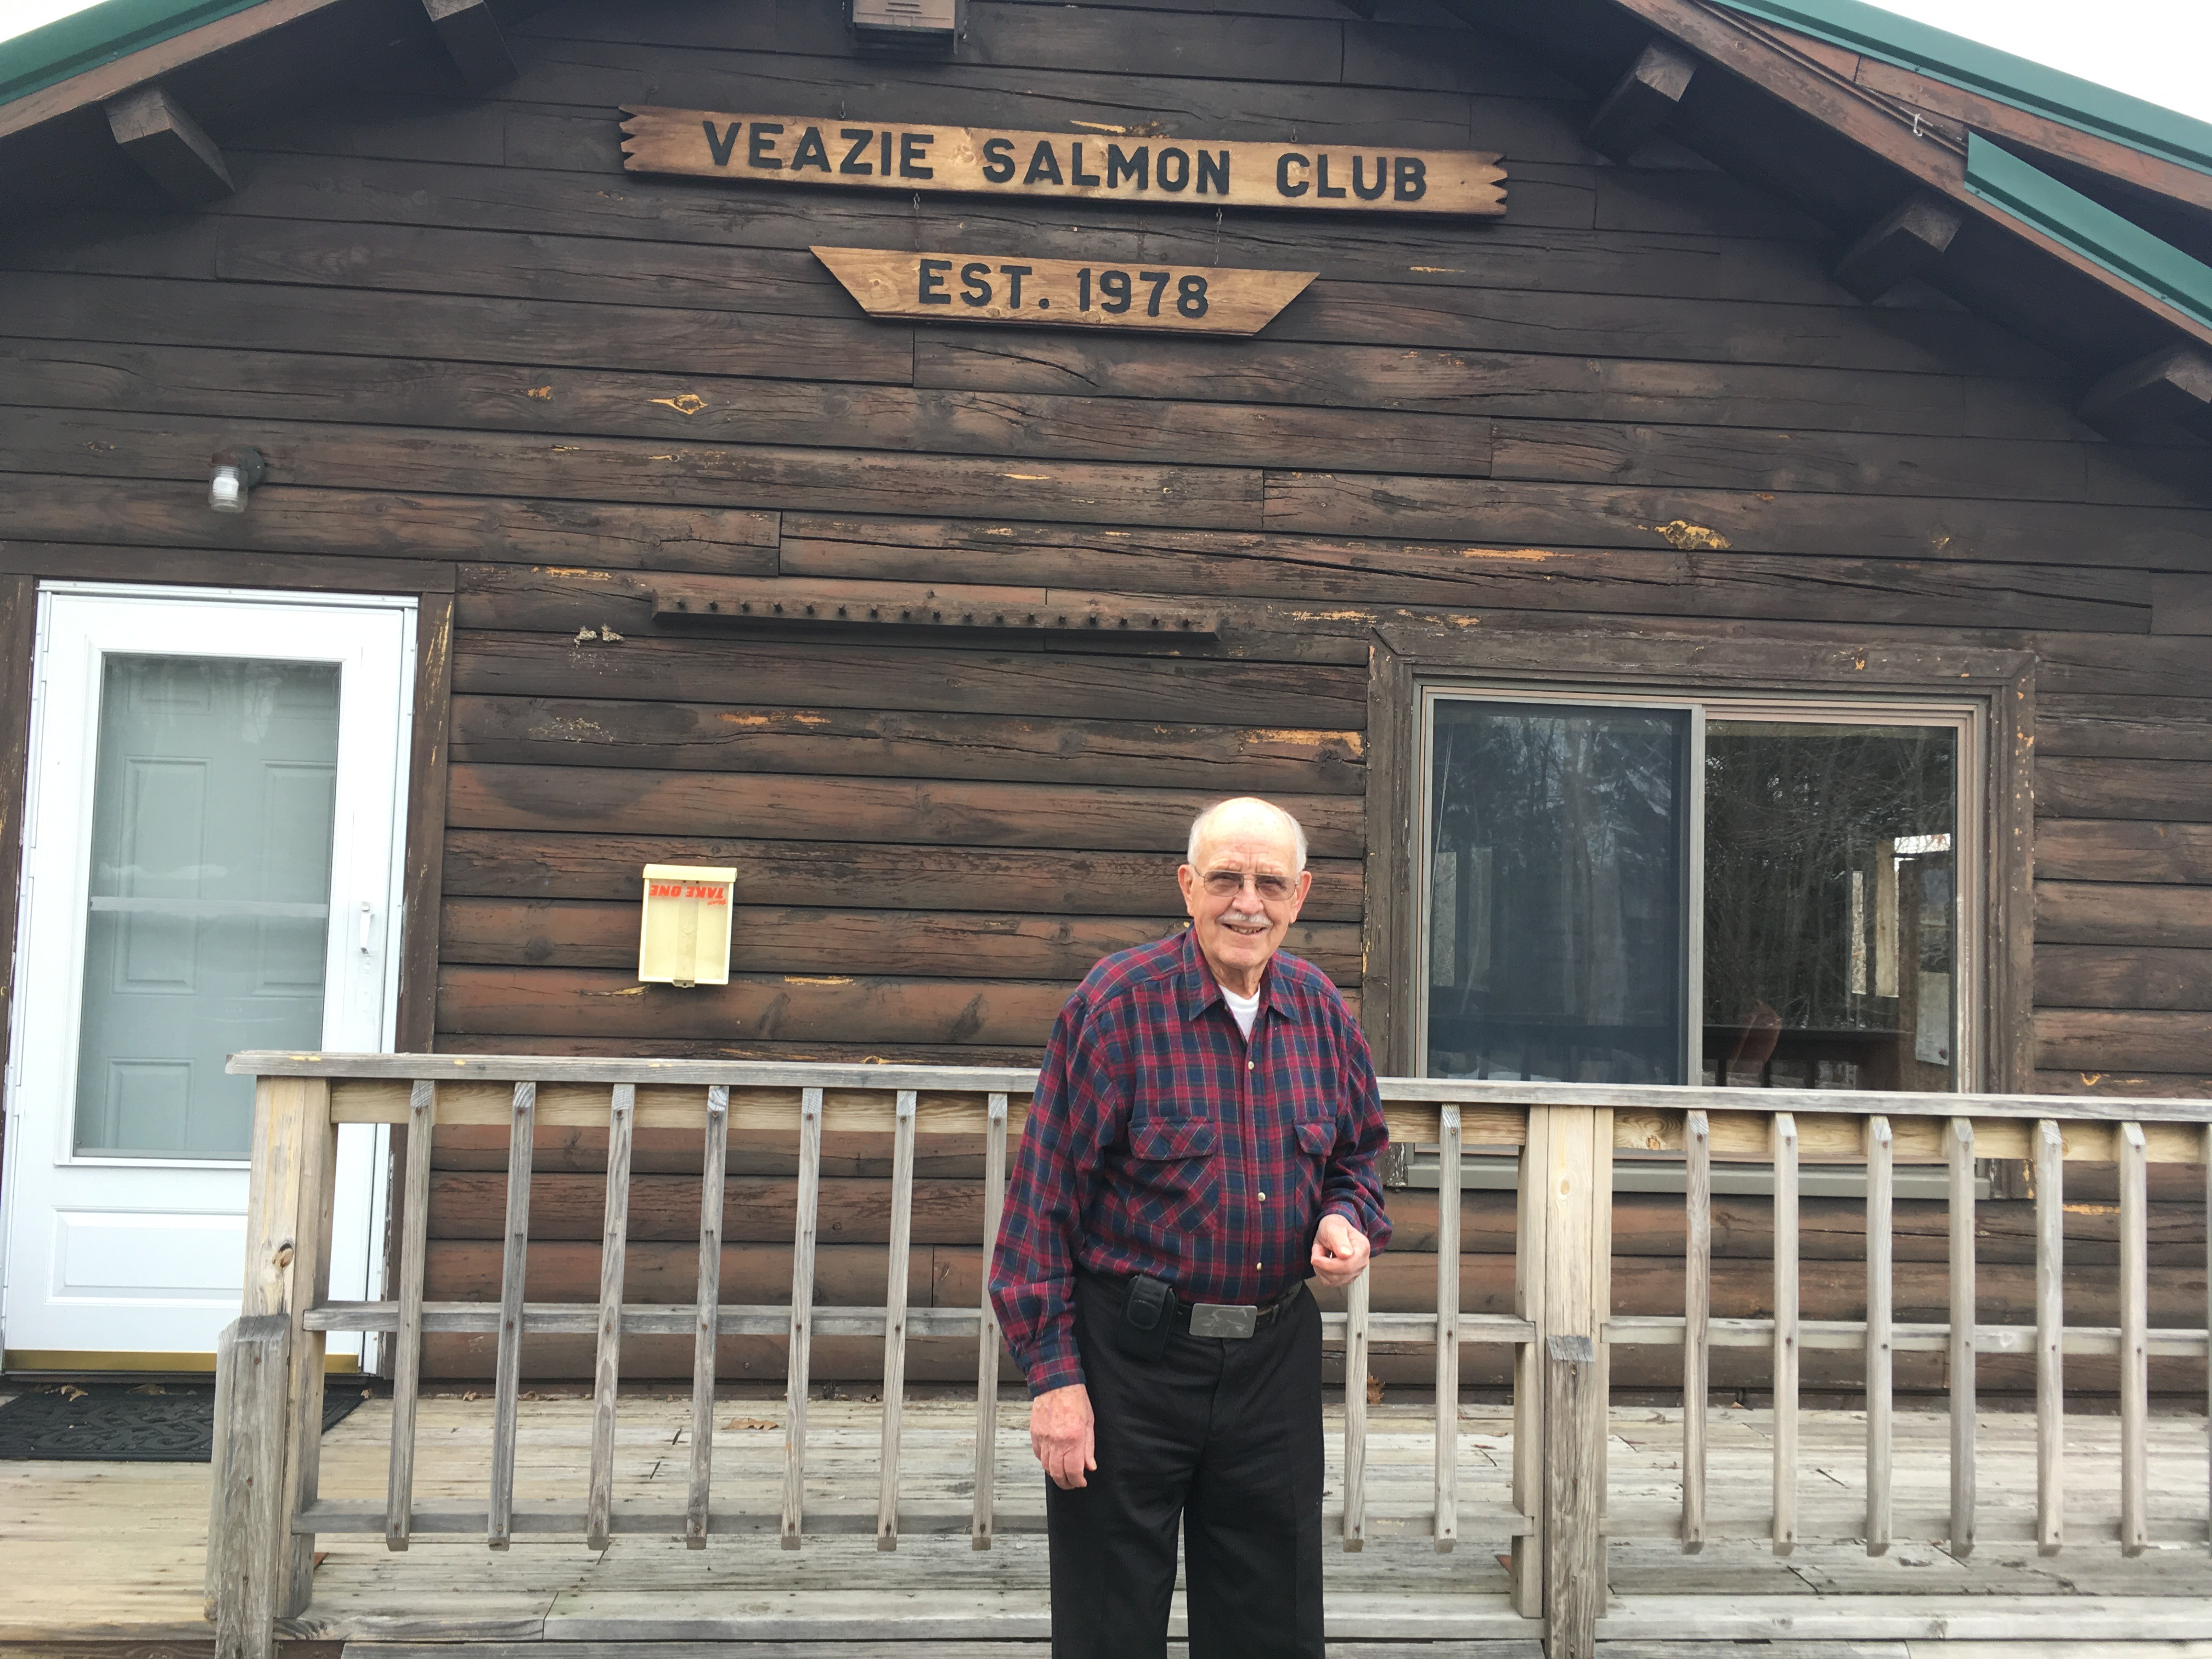 Claude Z. Westfall outside of the old Viezie Salmon Club. Photo by Caroline Lester for the New England News Collaborative